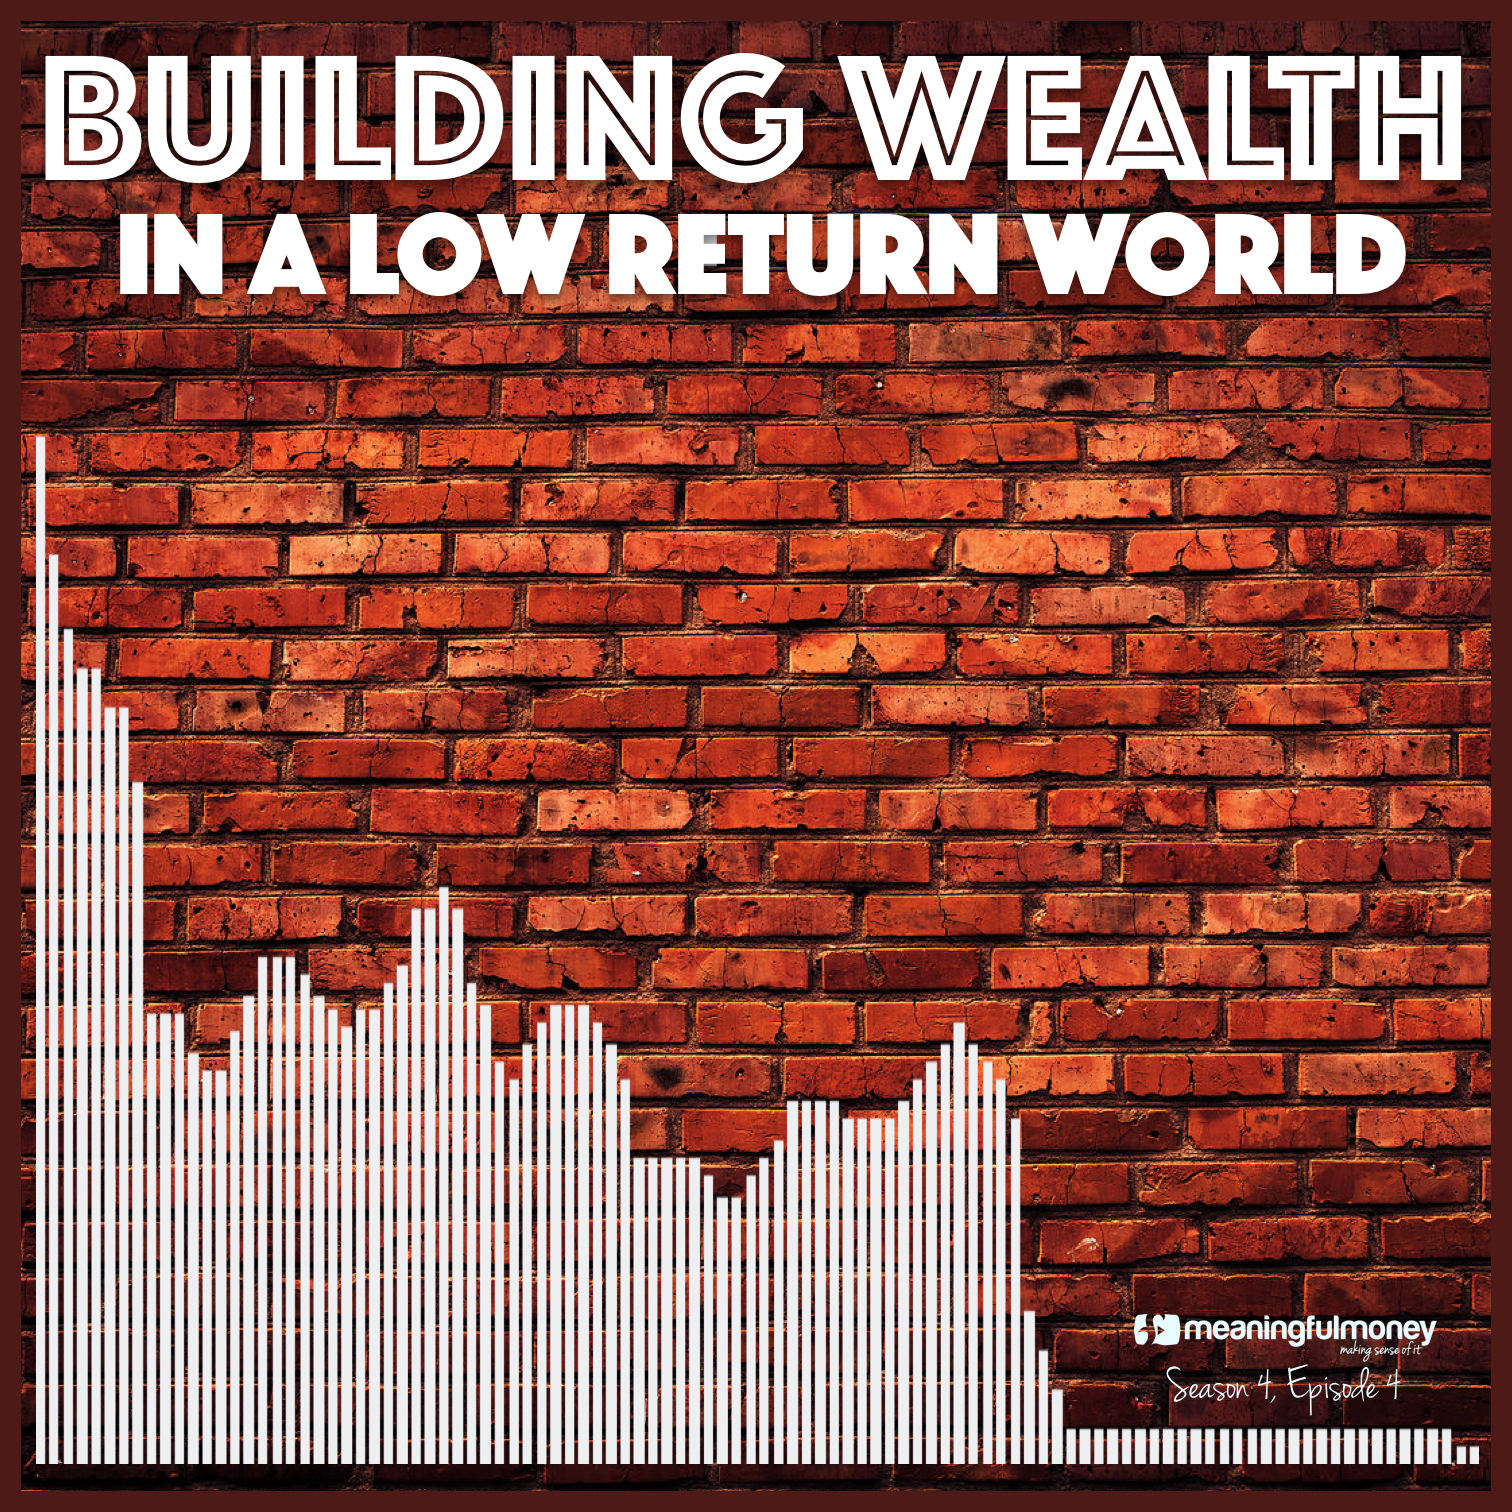 Building Wealth In A Low Return World|Building Wealth In A Low Return World